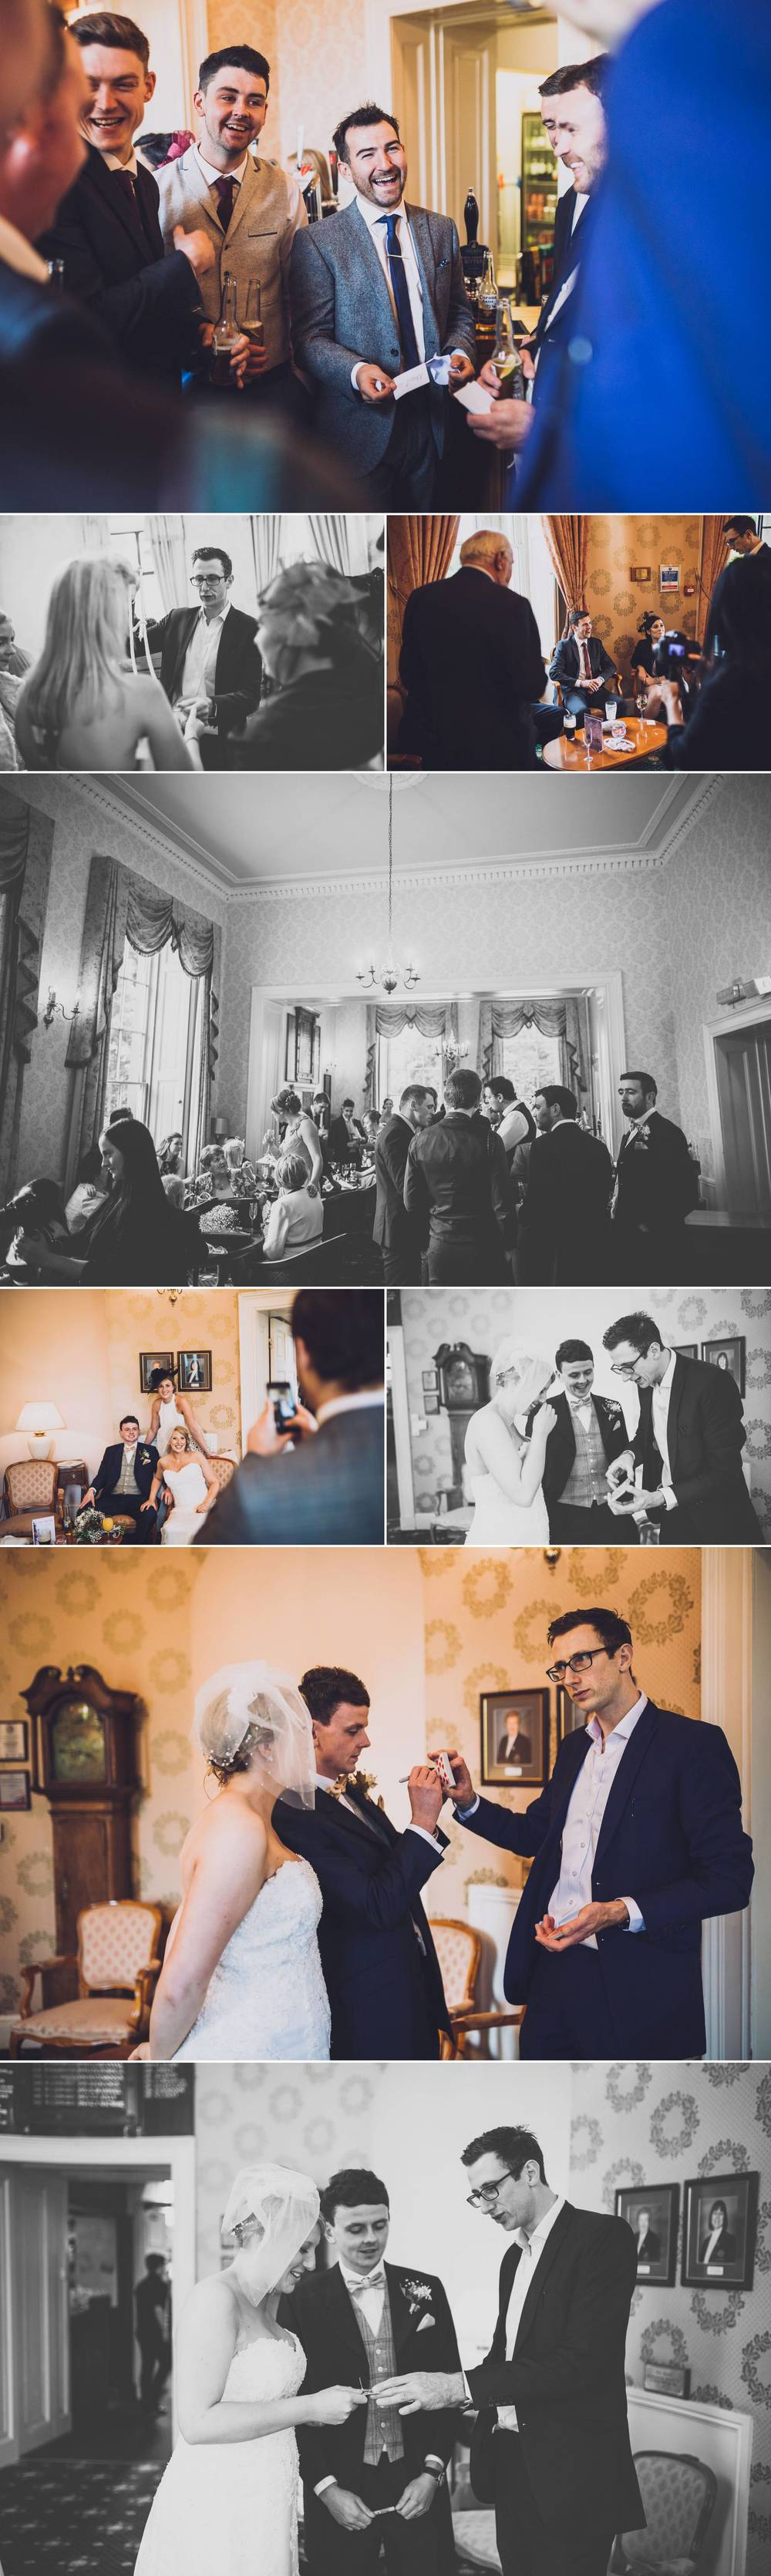 wedding-photographer-staffordshire 15.jpg